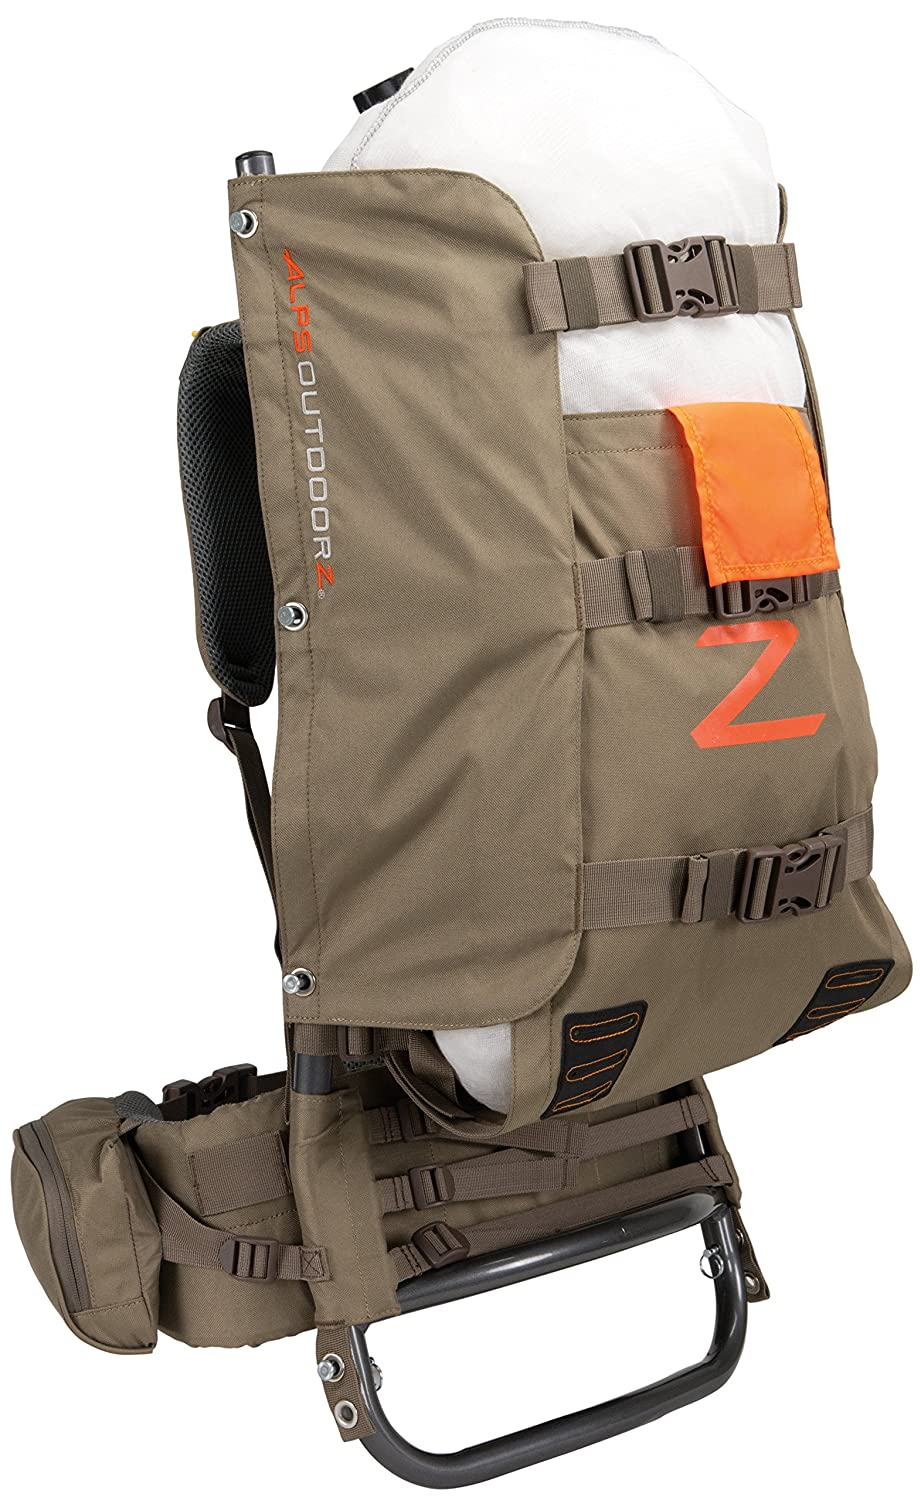 ALPS OutdoorZ Commander Lite Best Pack Frames For Hunting